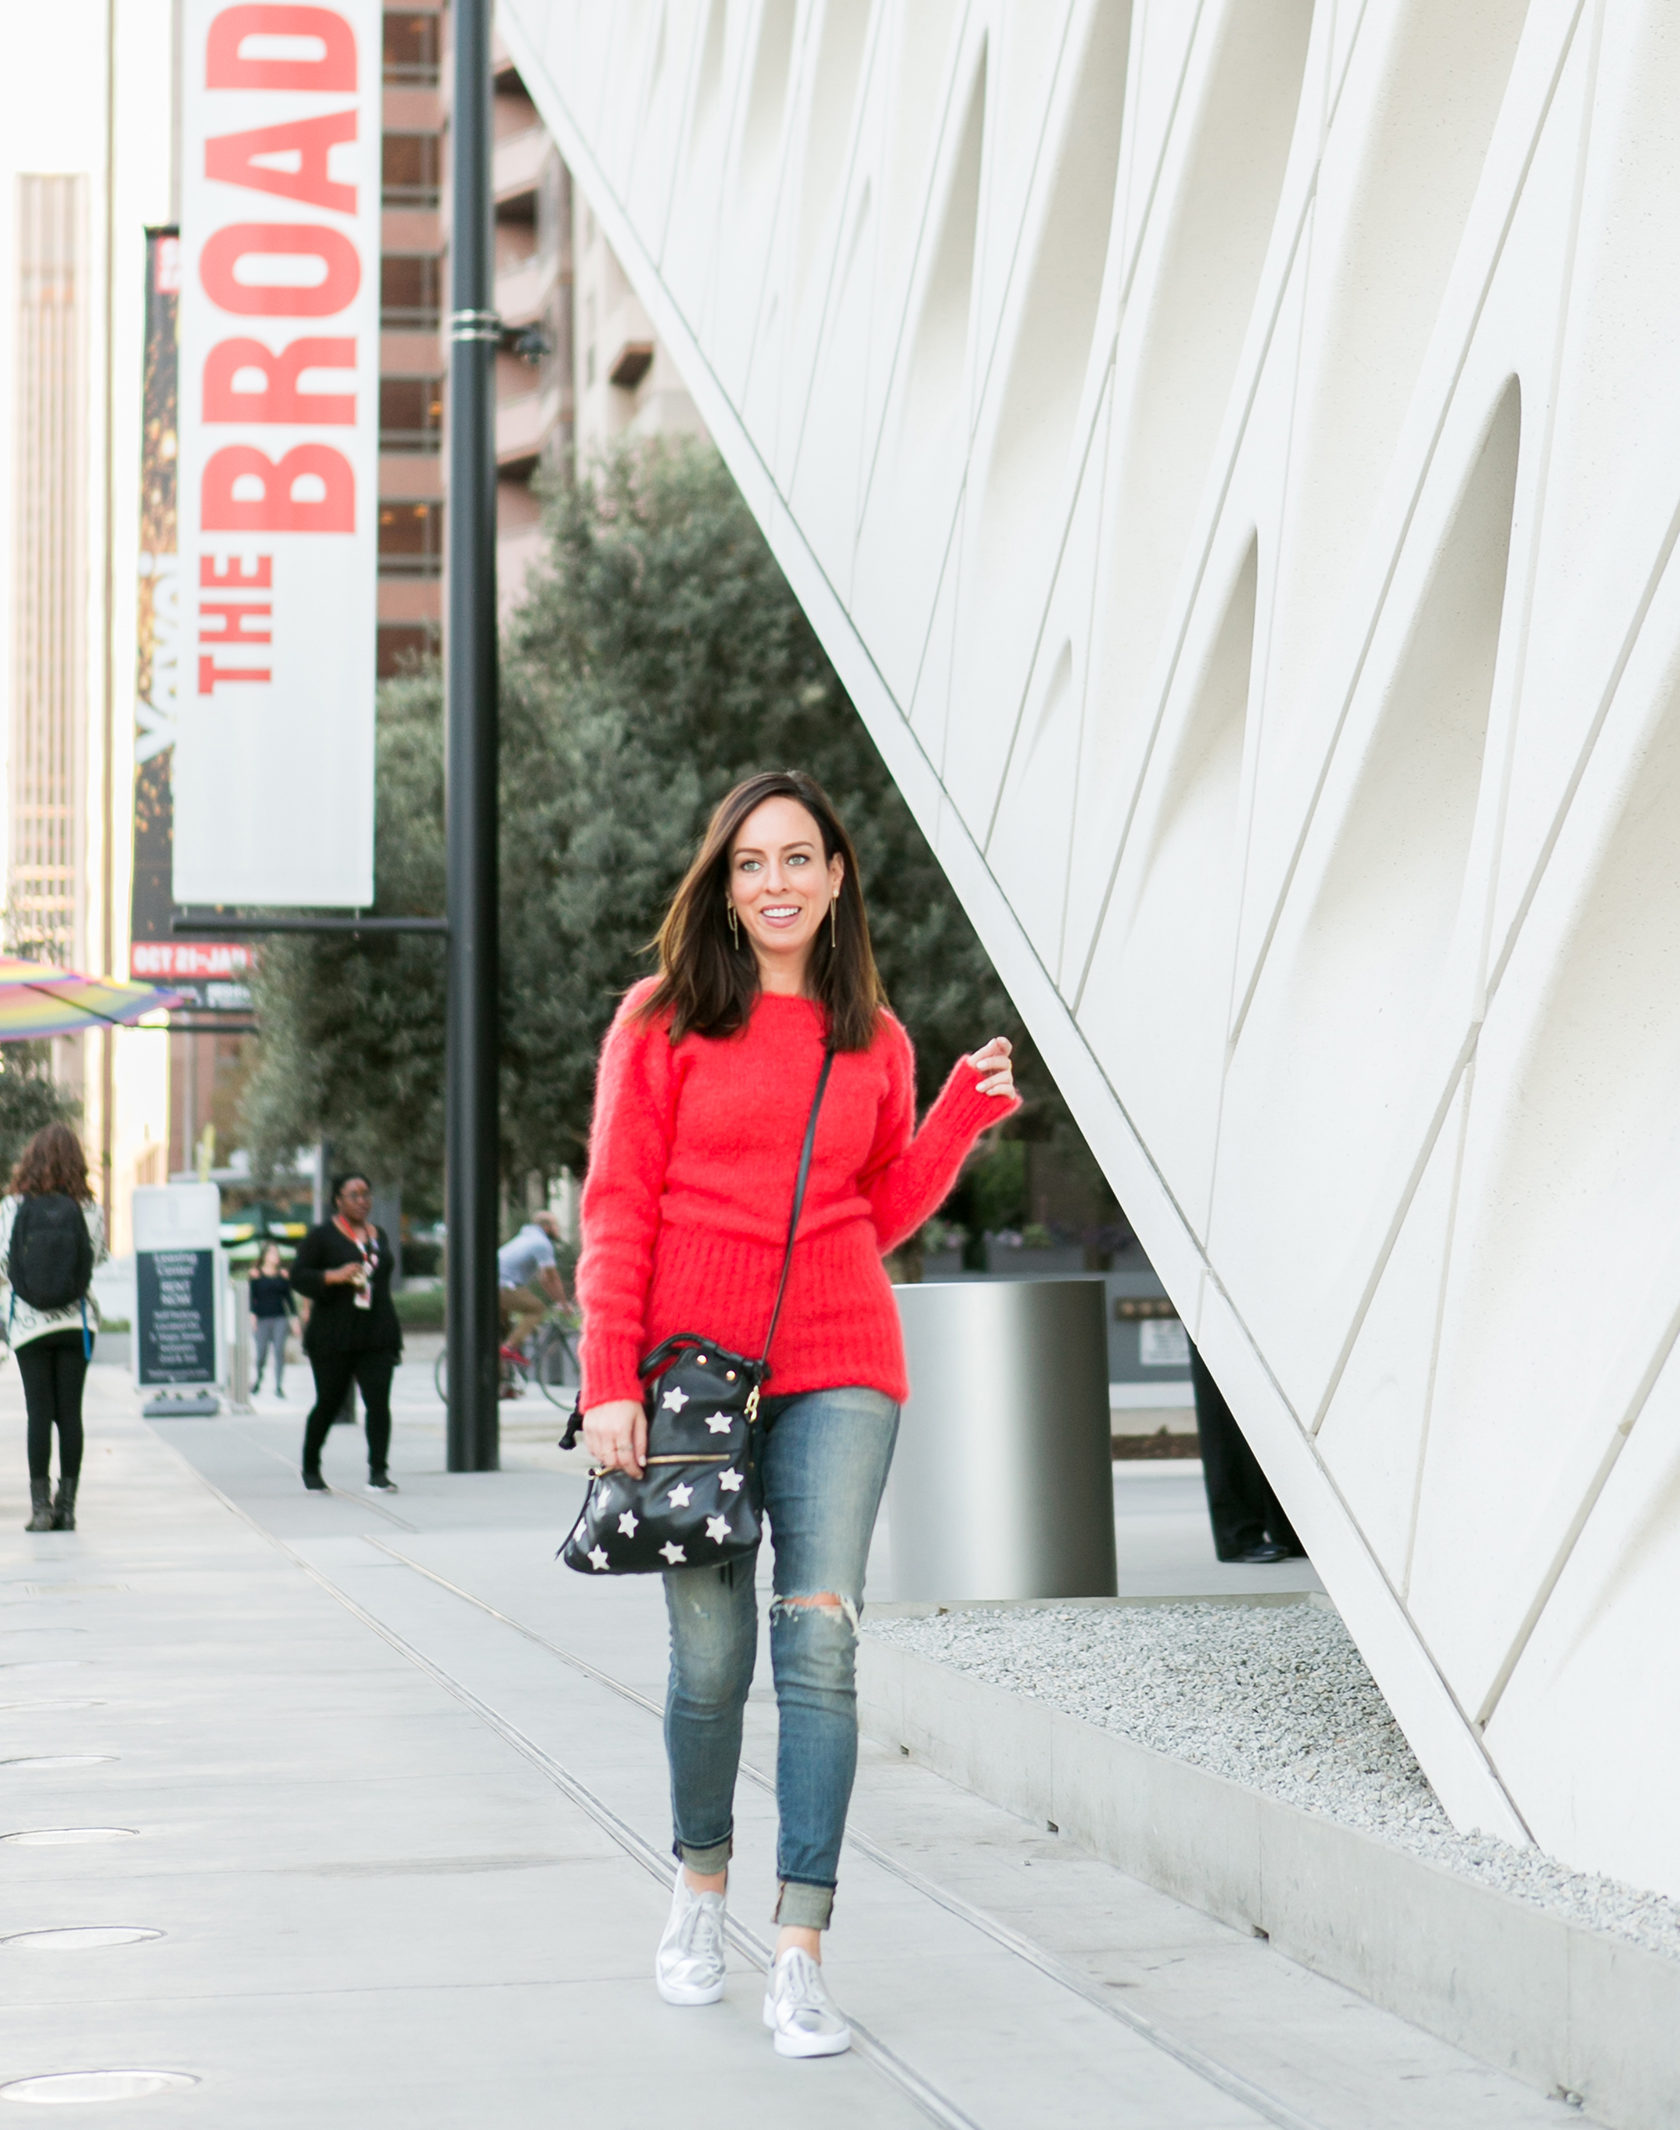 Sydne Style shows what to wear to the broad museum in red sweater and jeans